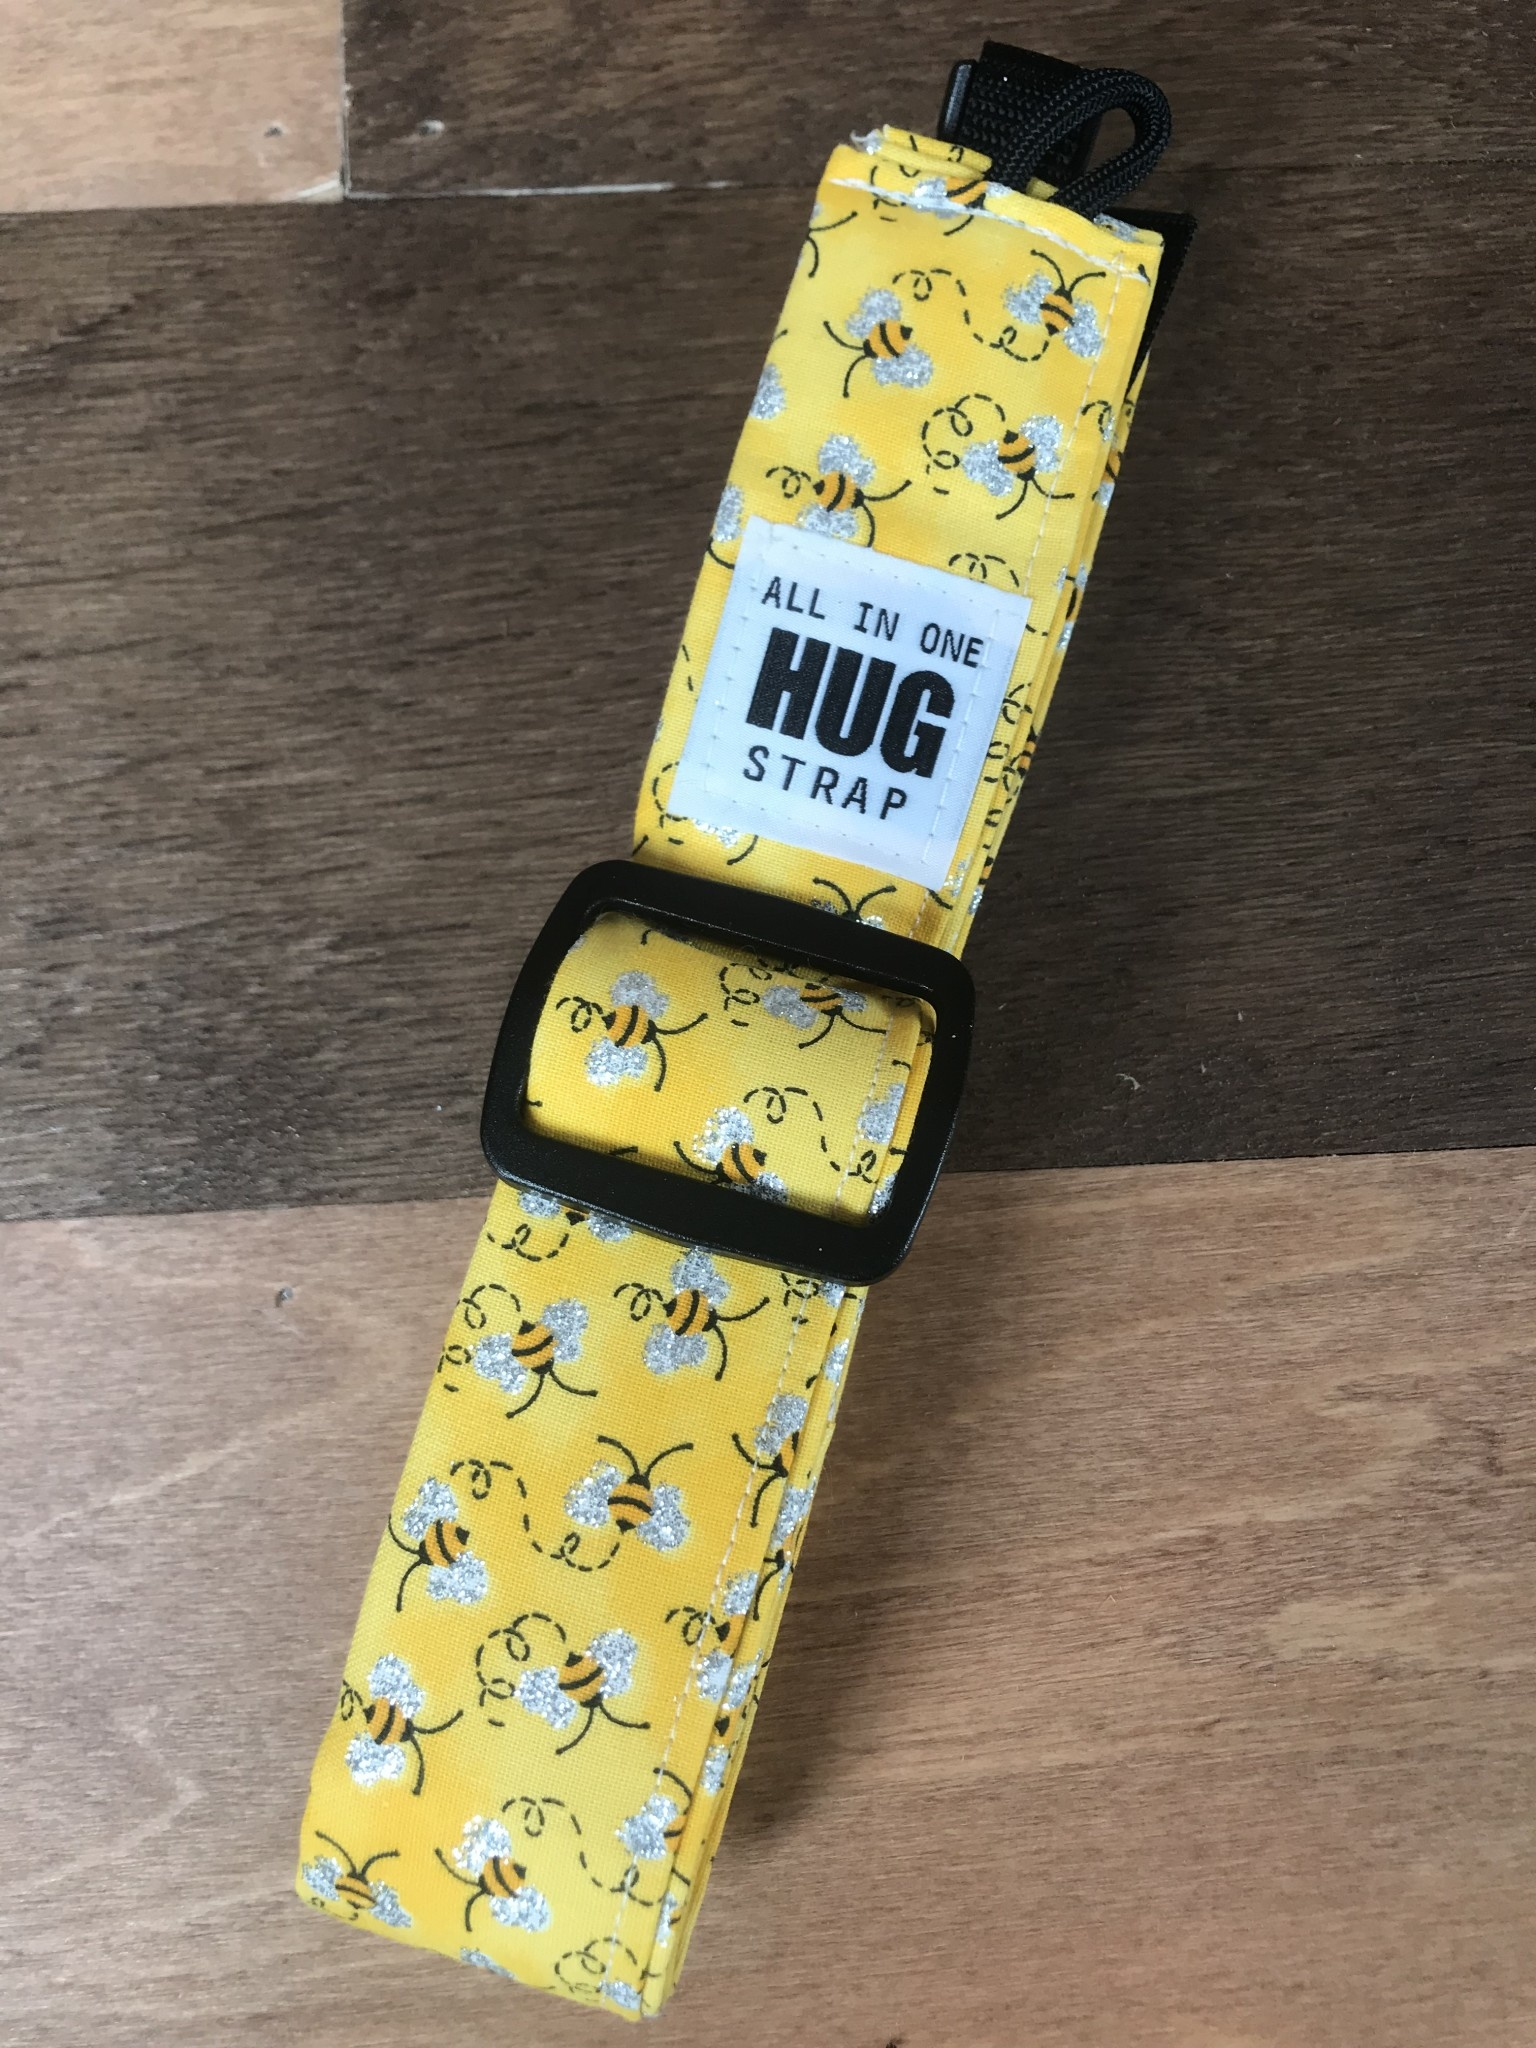 The Hug Strap All in One Hug Strap - Bees